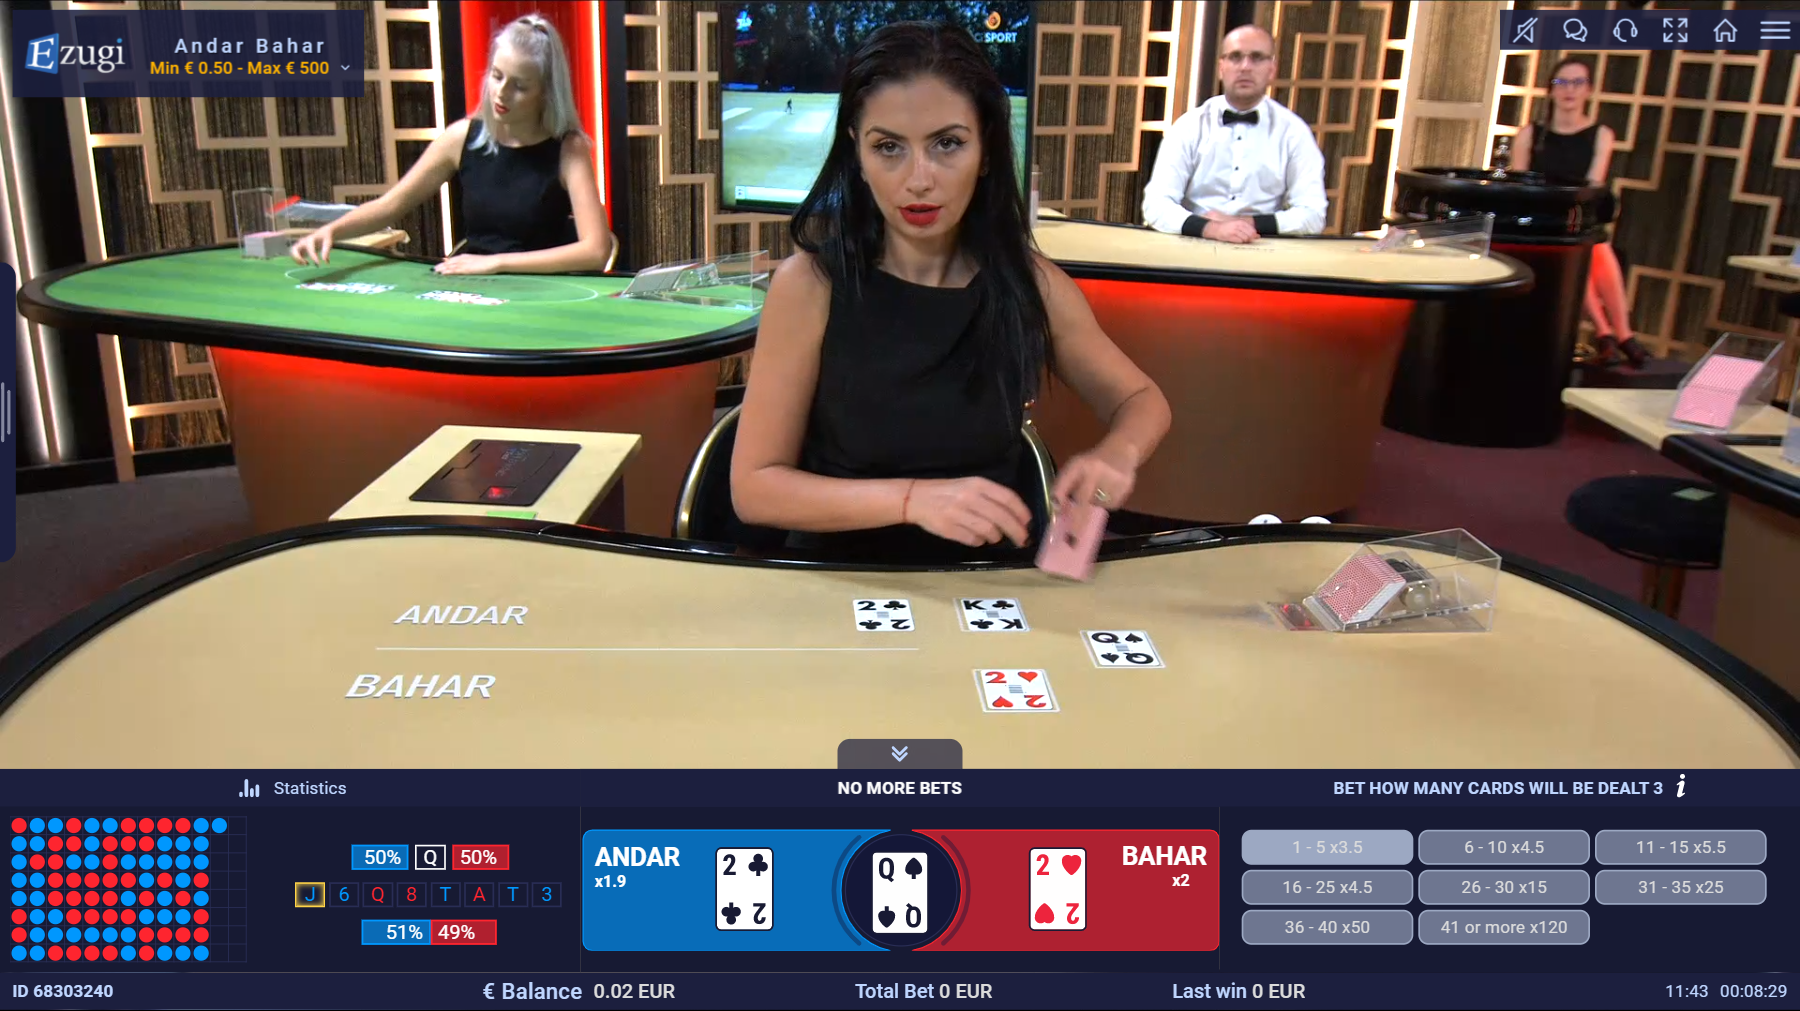 Andar Bahar being played on Live-casino